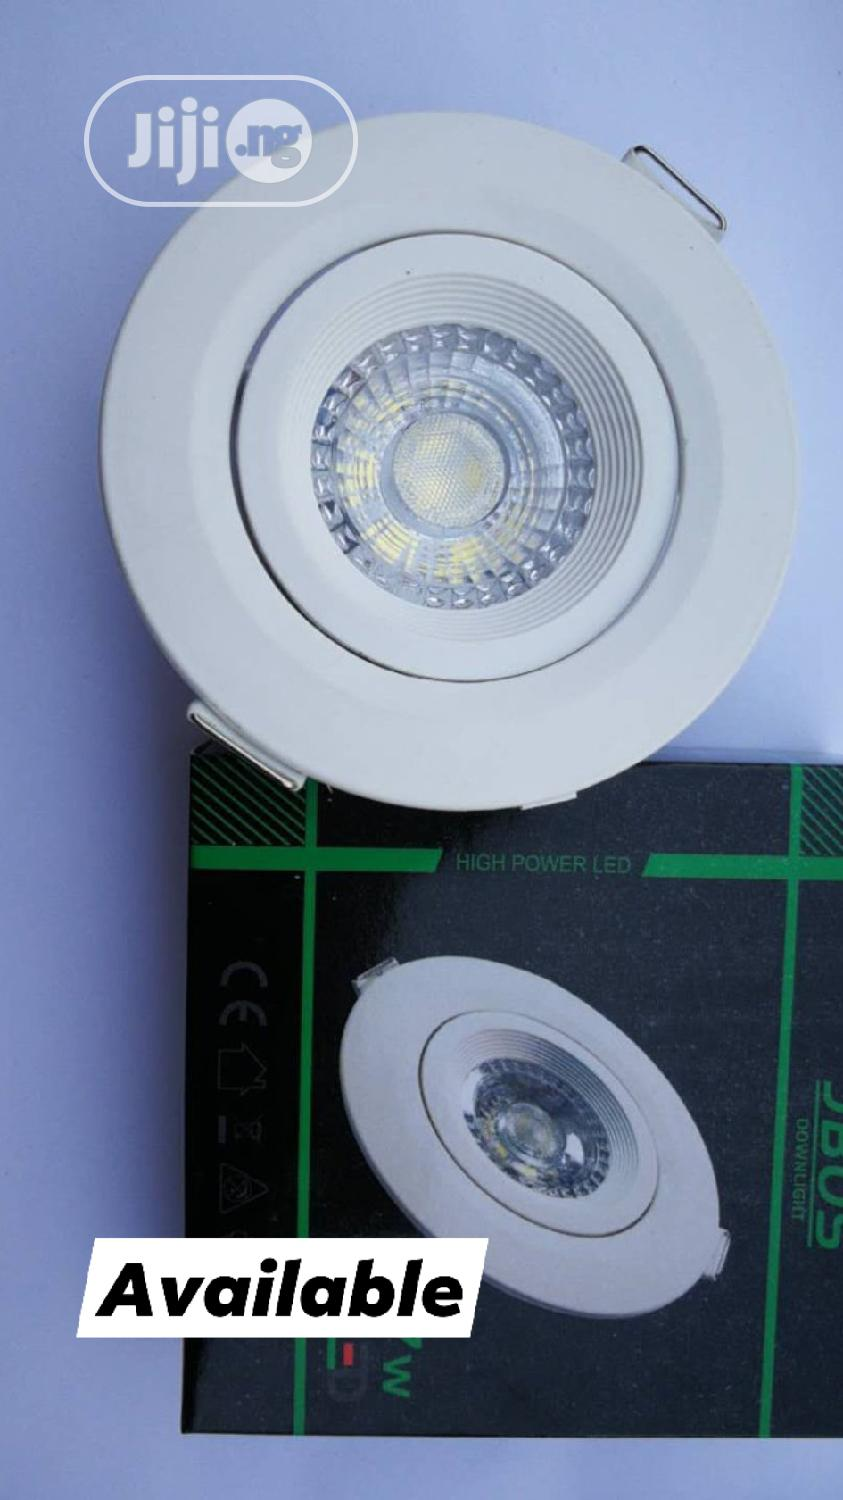 Original Pop LED Light